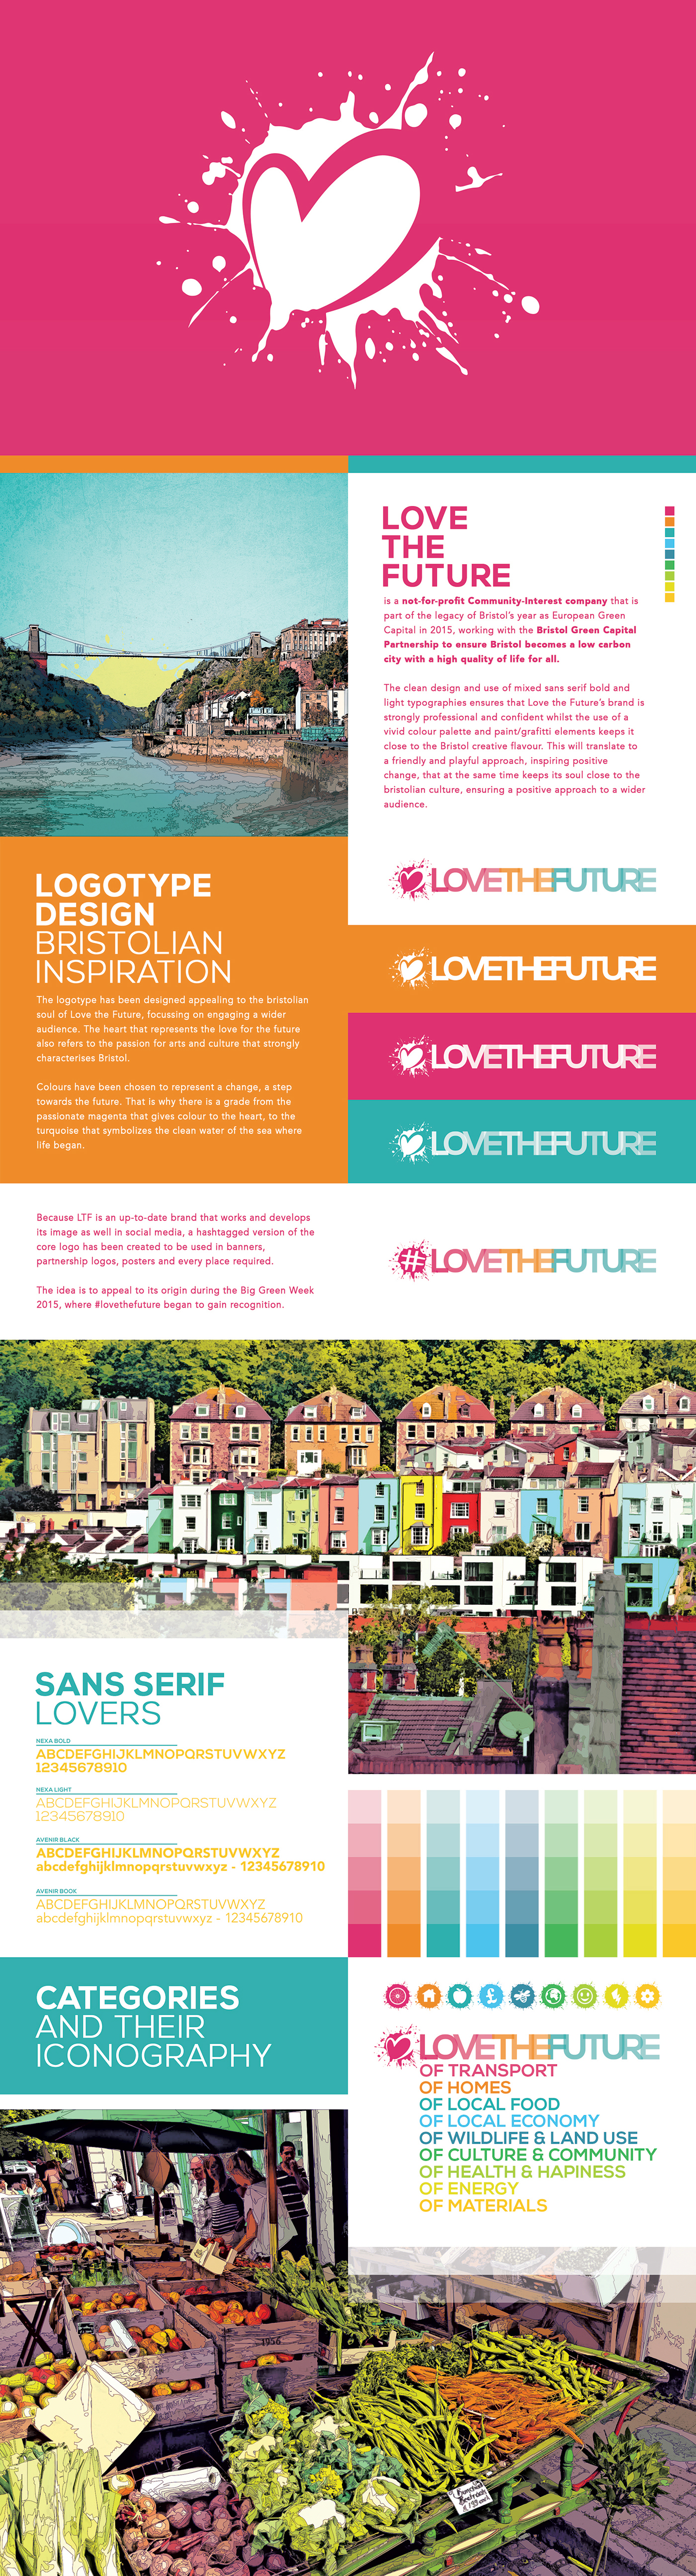 lovethefuture heart future green cic campaign identity Ecology wellbeing social Bristol poster logo media inspire